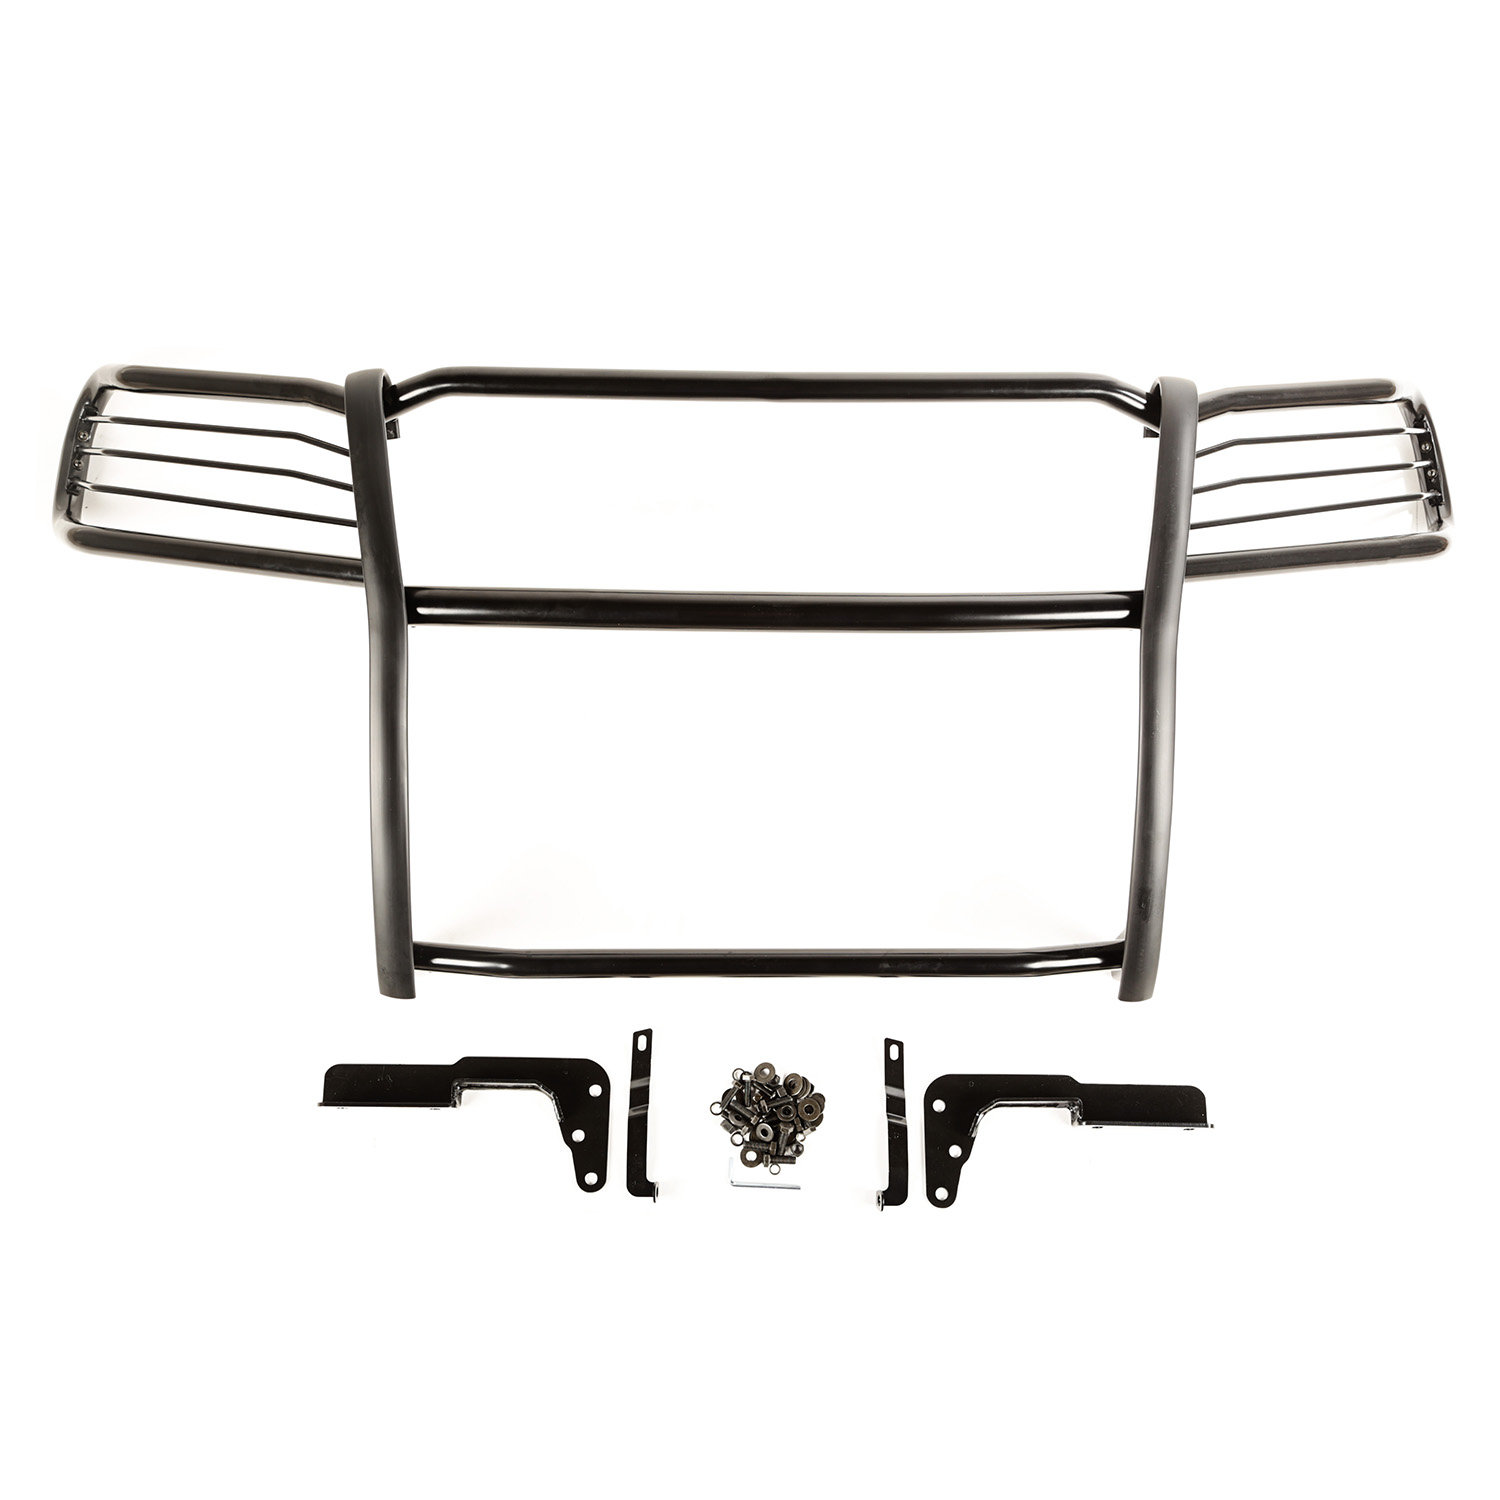 Rugged Ridge 02 Grille Guard In Black For 11 17 Jeep